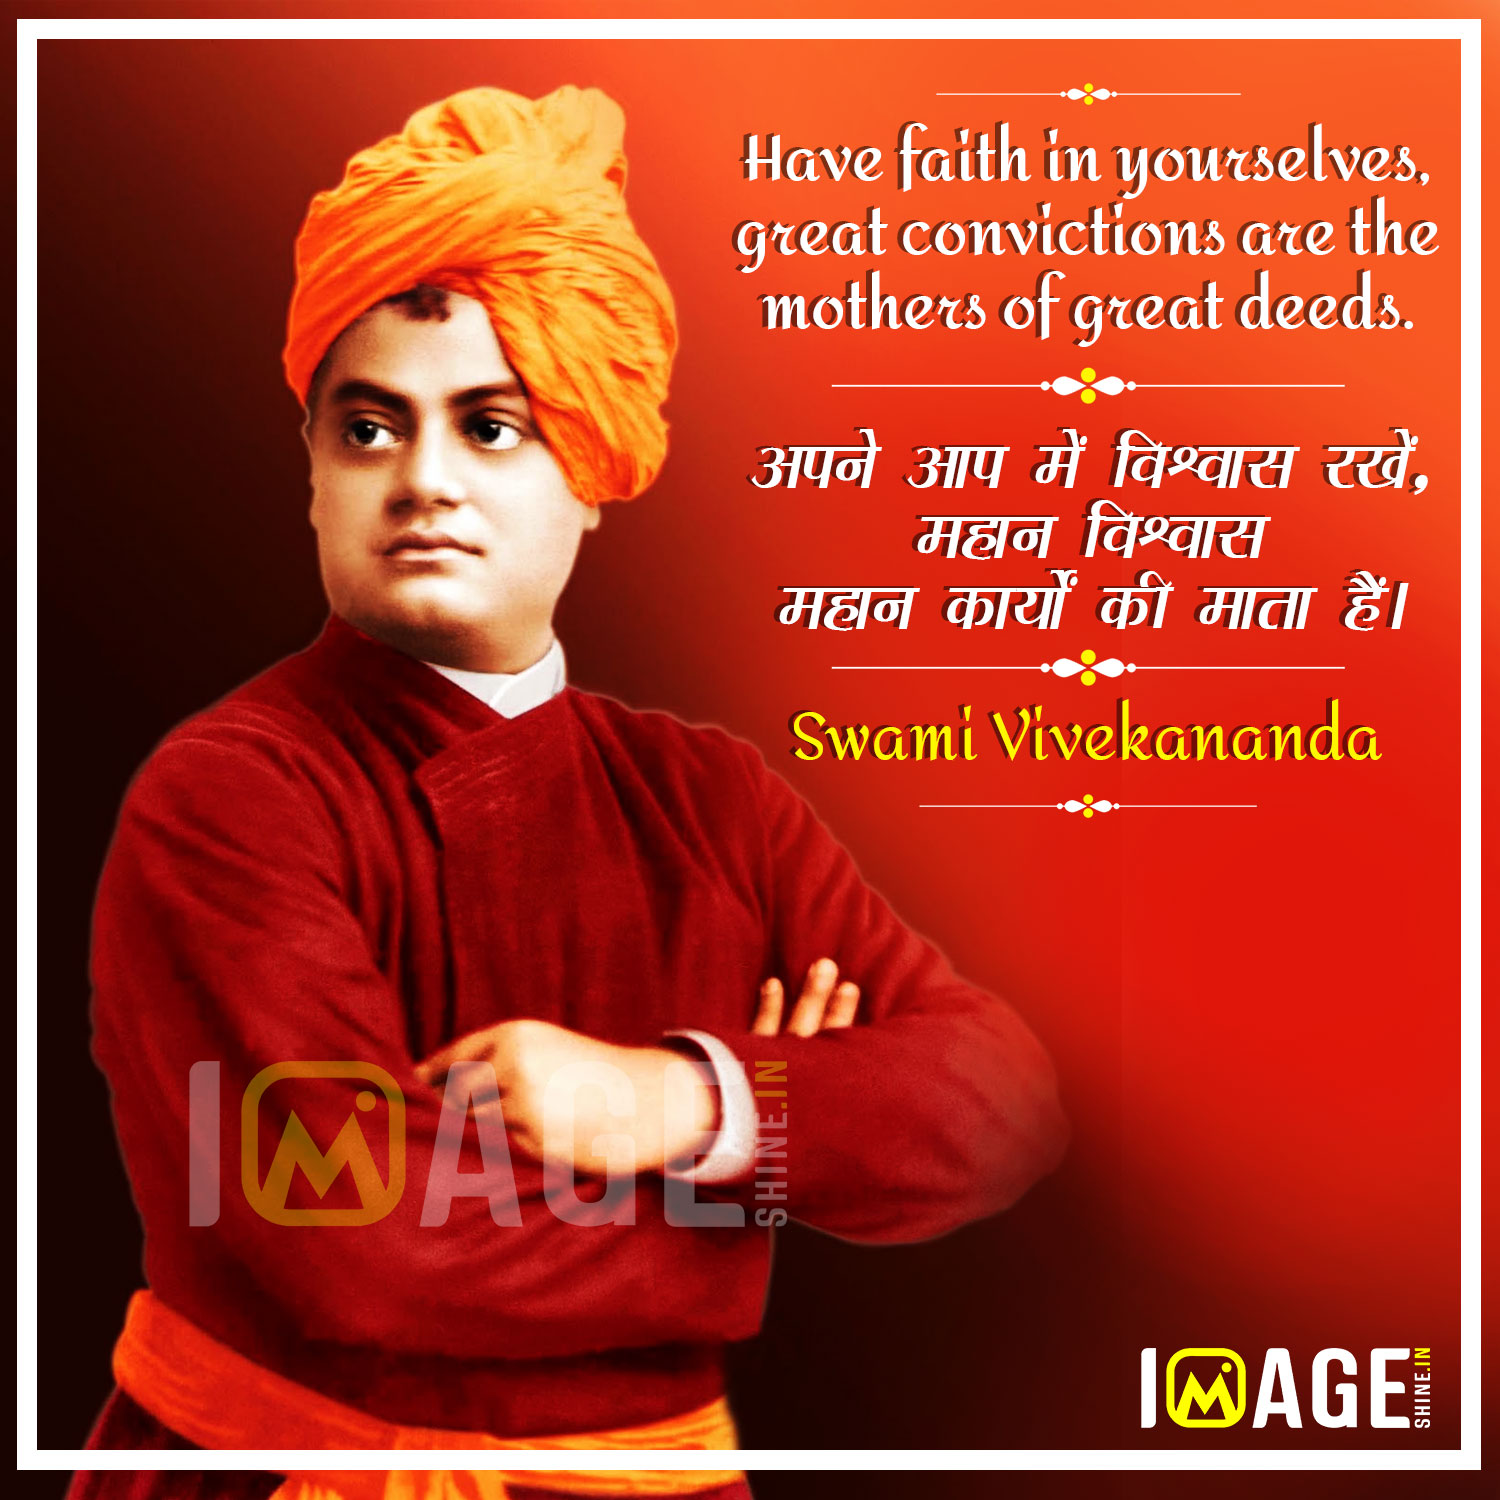 swami vivekananda quote in english